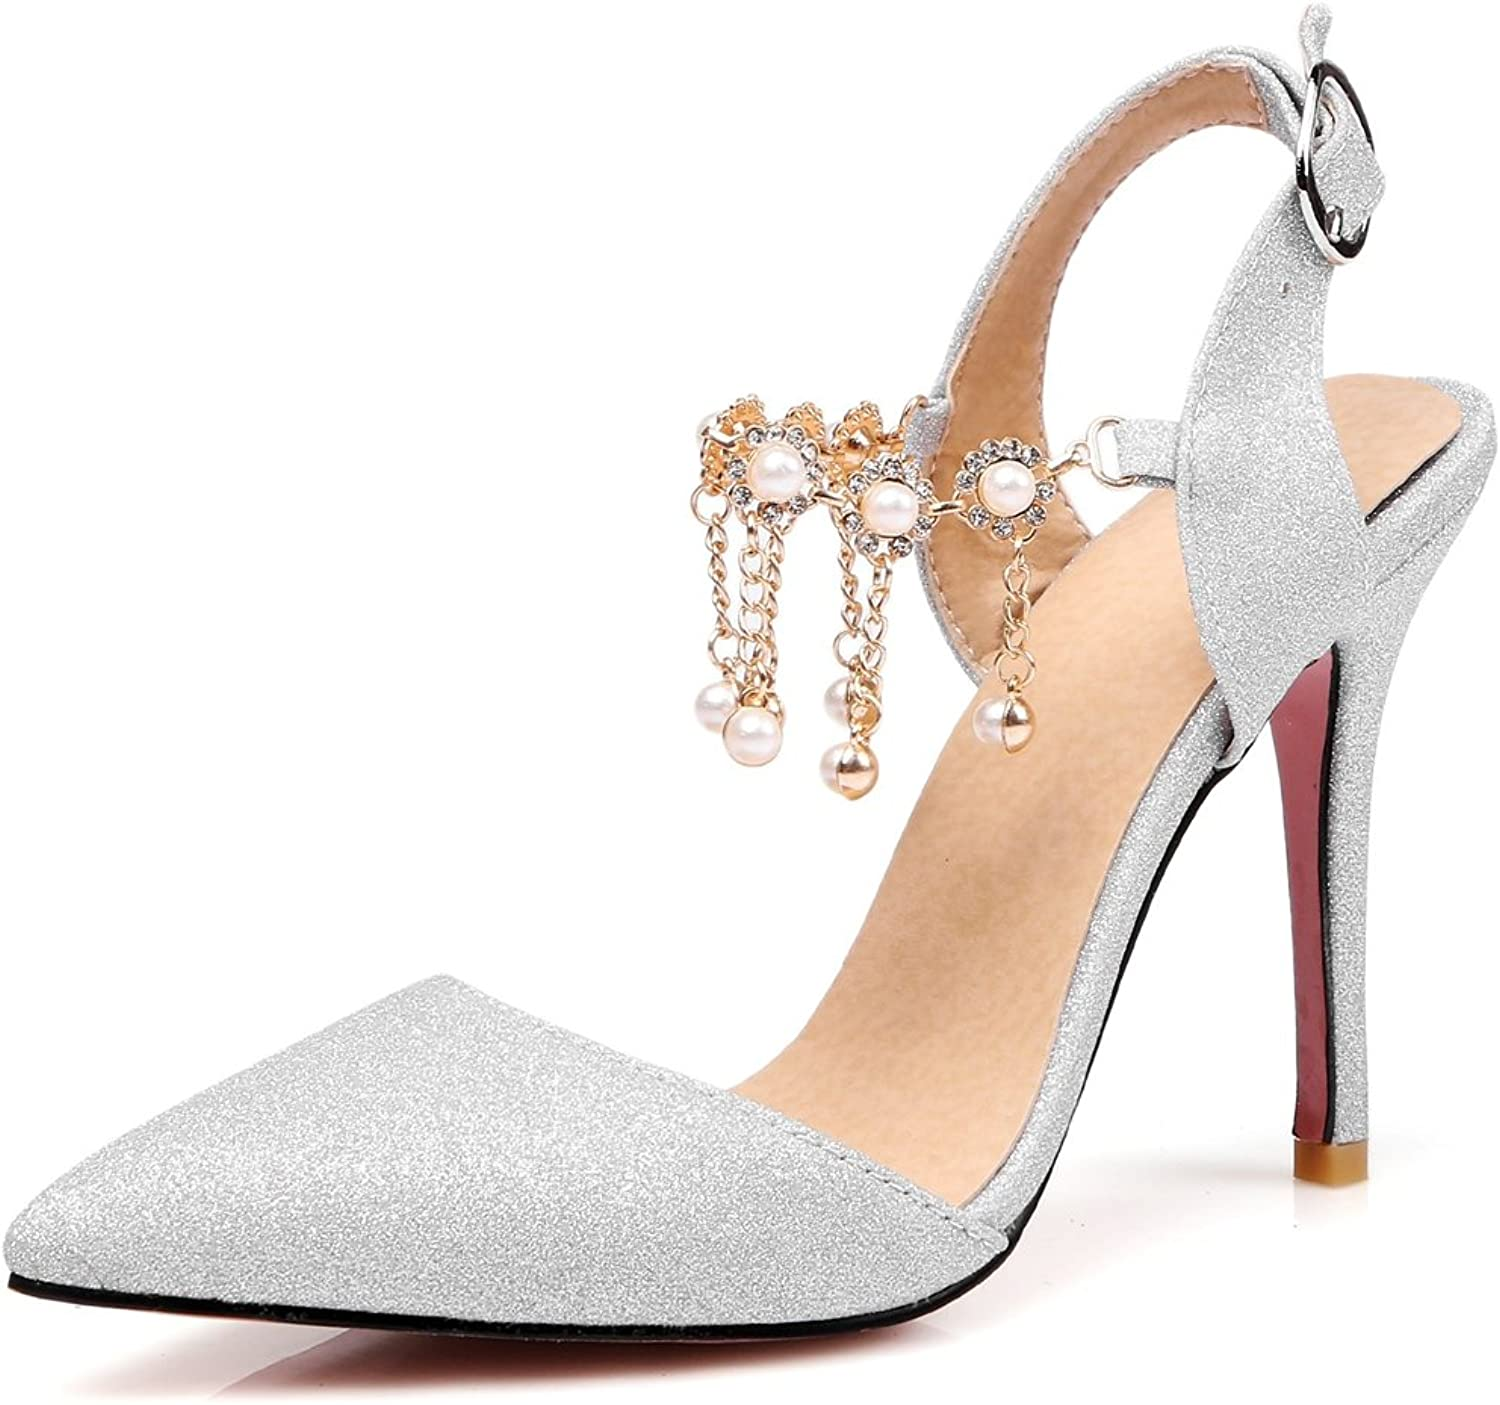 Kaloosh Women's Beautiful Pointed Toe Beading Stiletto High Heel Buckle Strap Party Drass Sandals